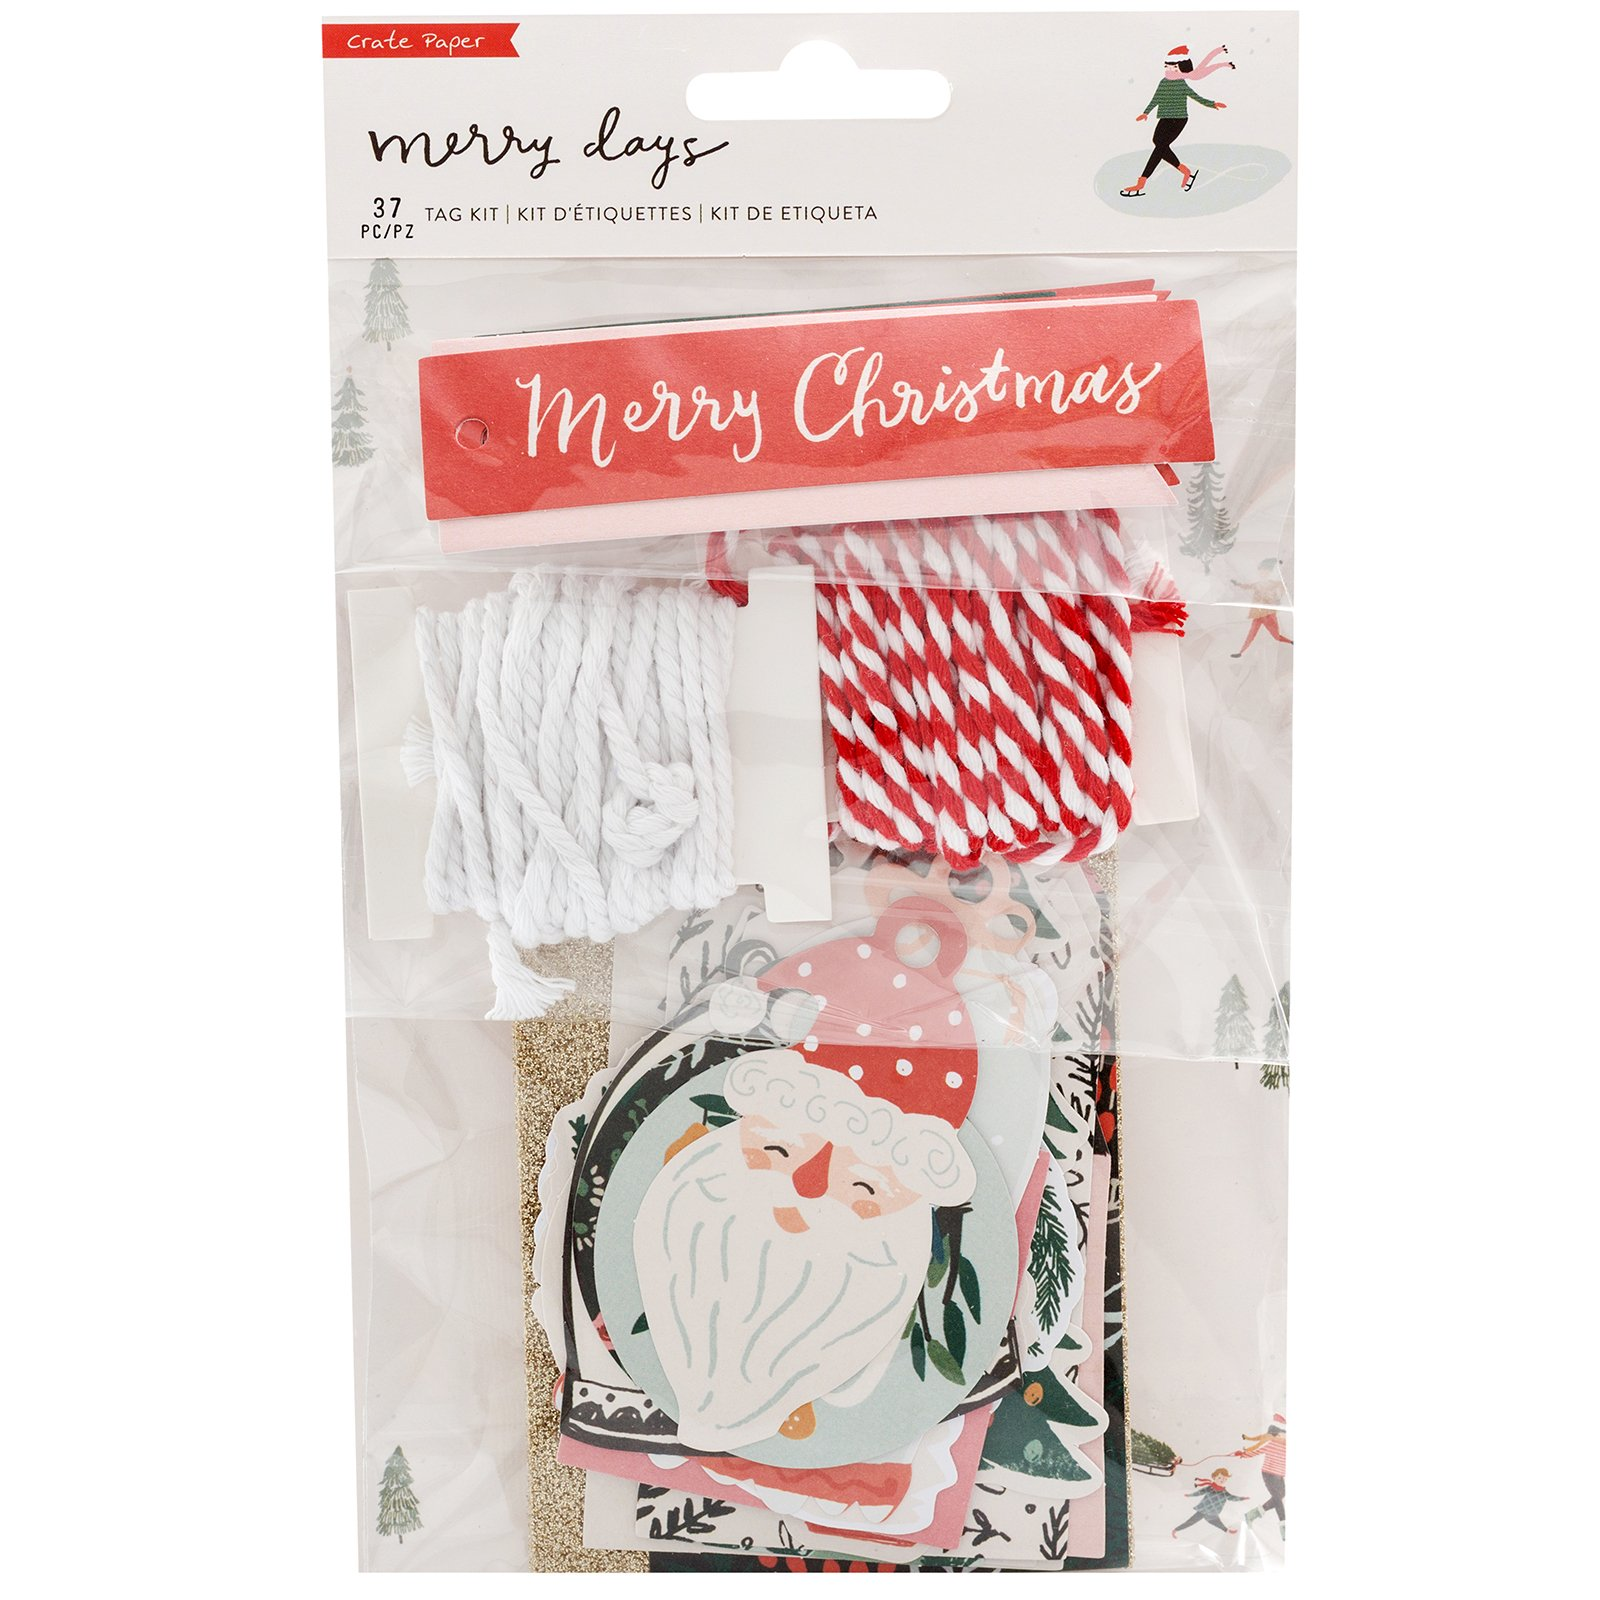 Crate Paper Merry Days Tag Kit